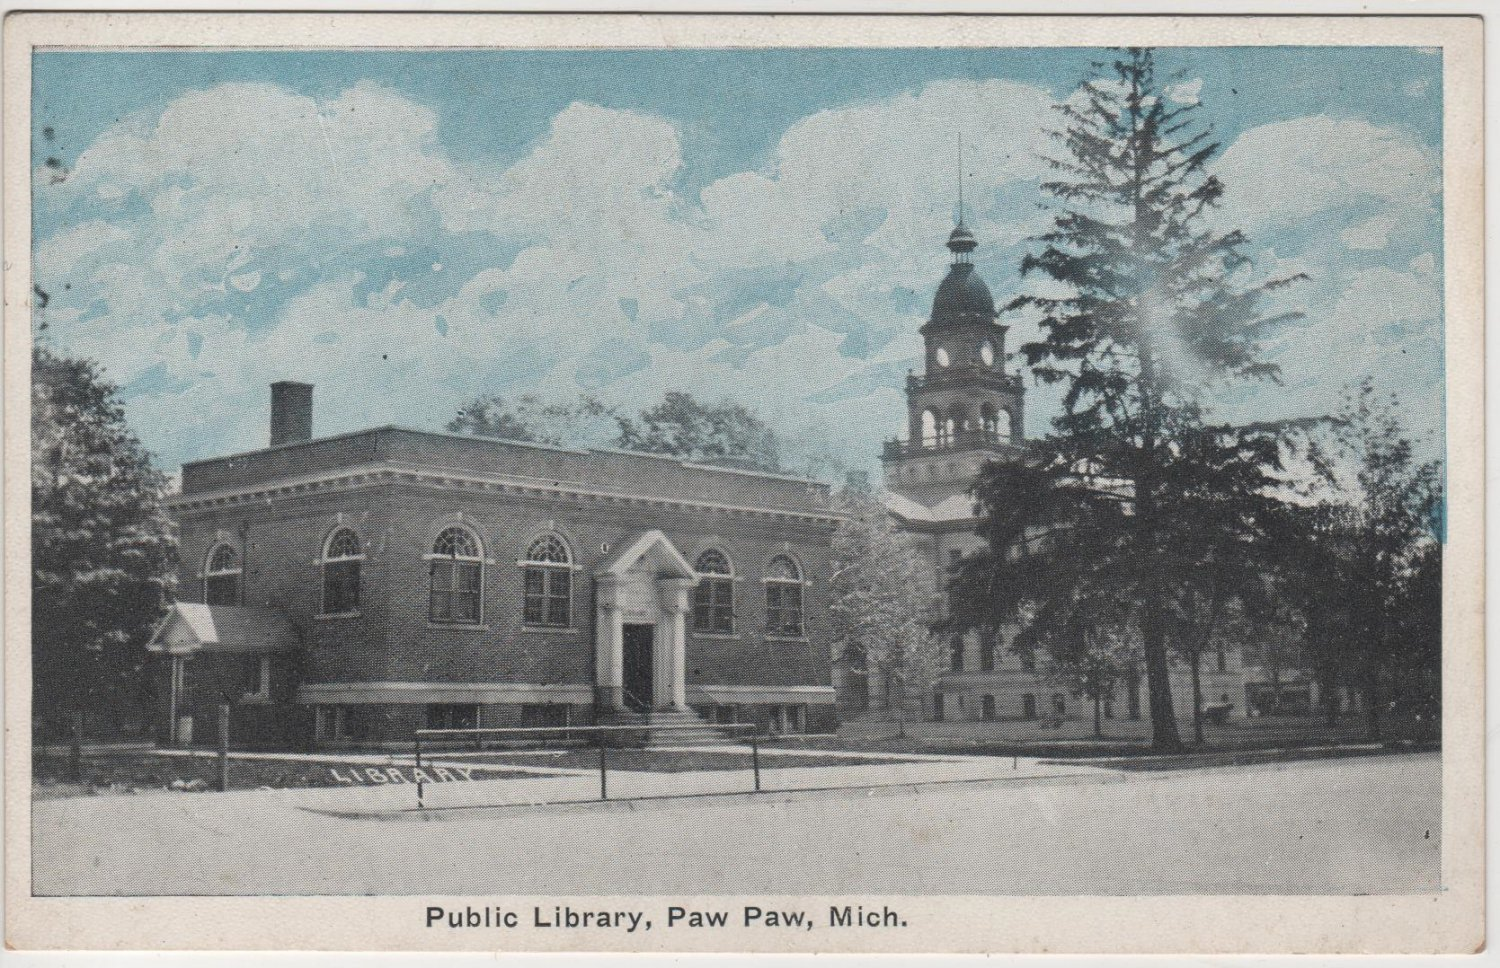 Paw Paw Michigan Postcard, Public Library Building and Grounds, Blue Tint c.1919